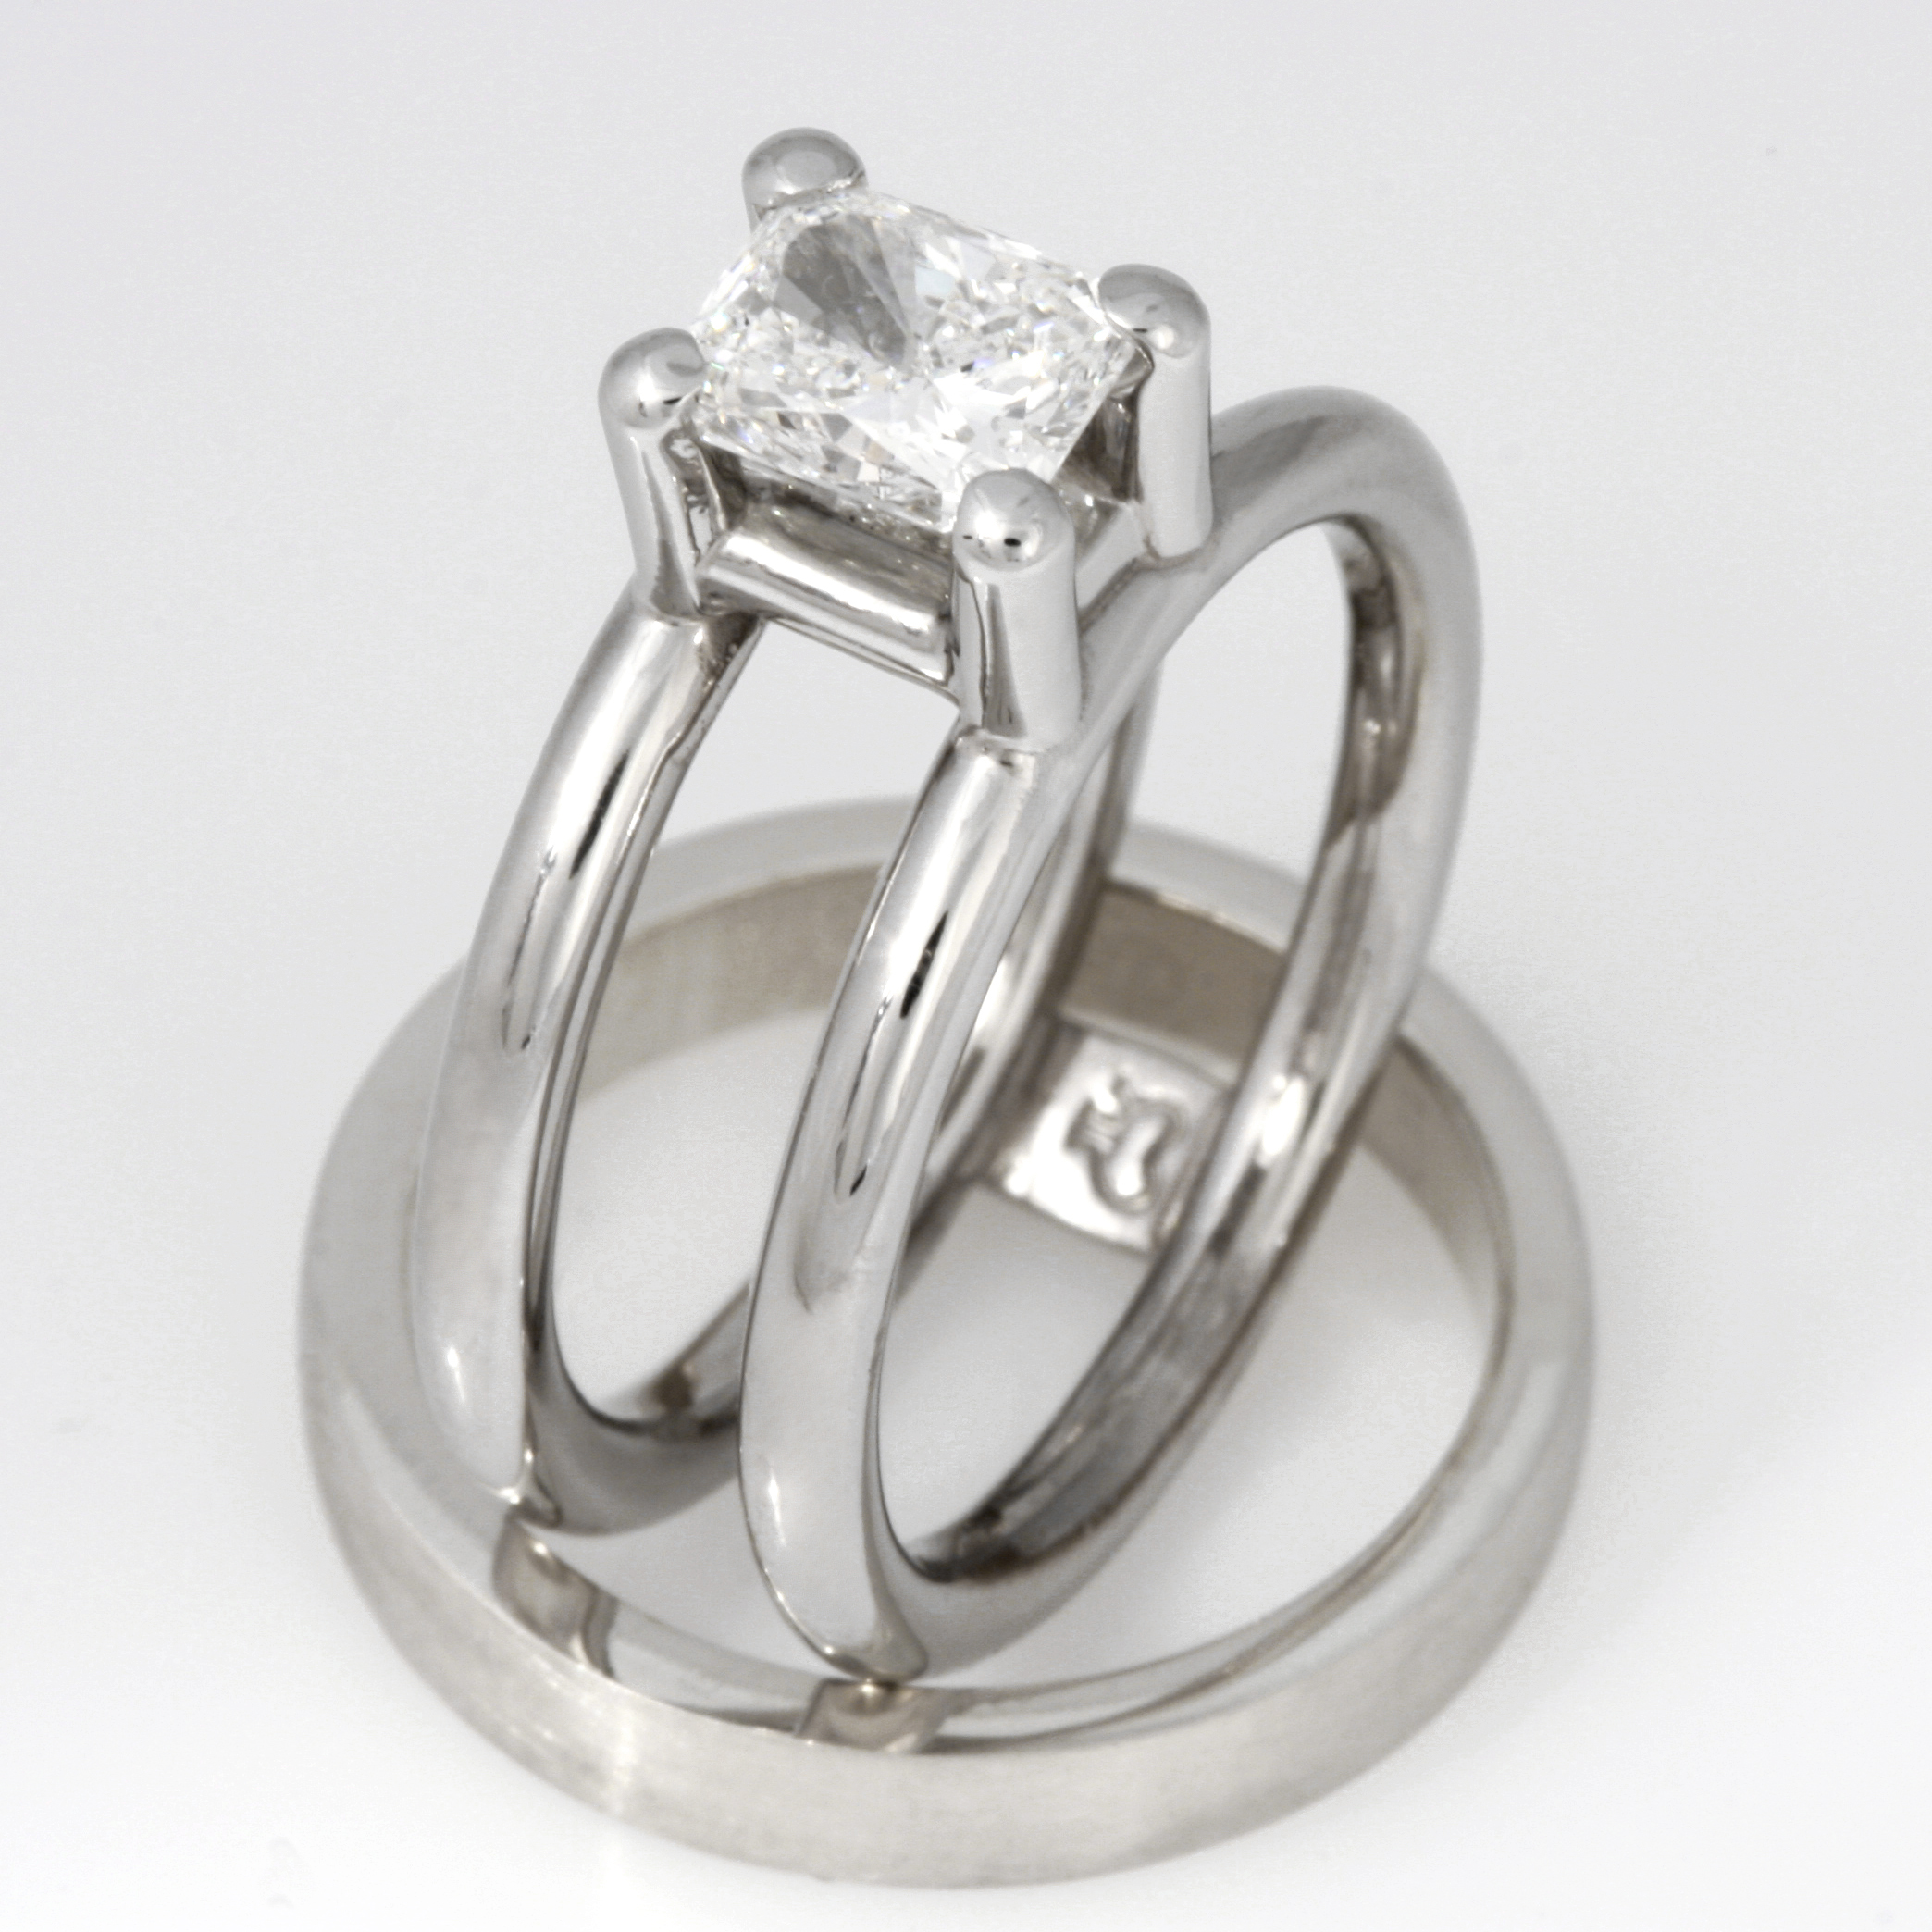 Handmade ladies palladium and platinum diamond engagement ring and 9ct white gold wedding ring set